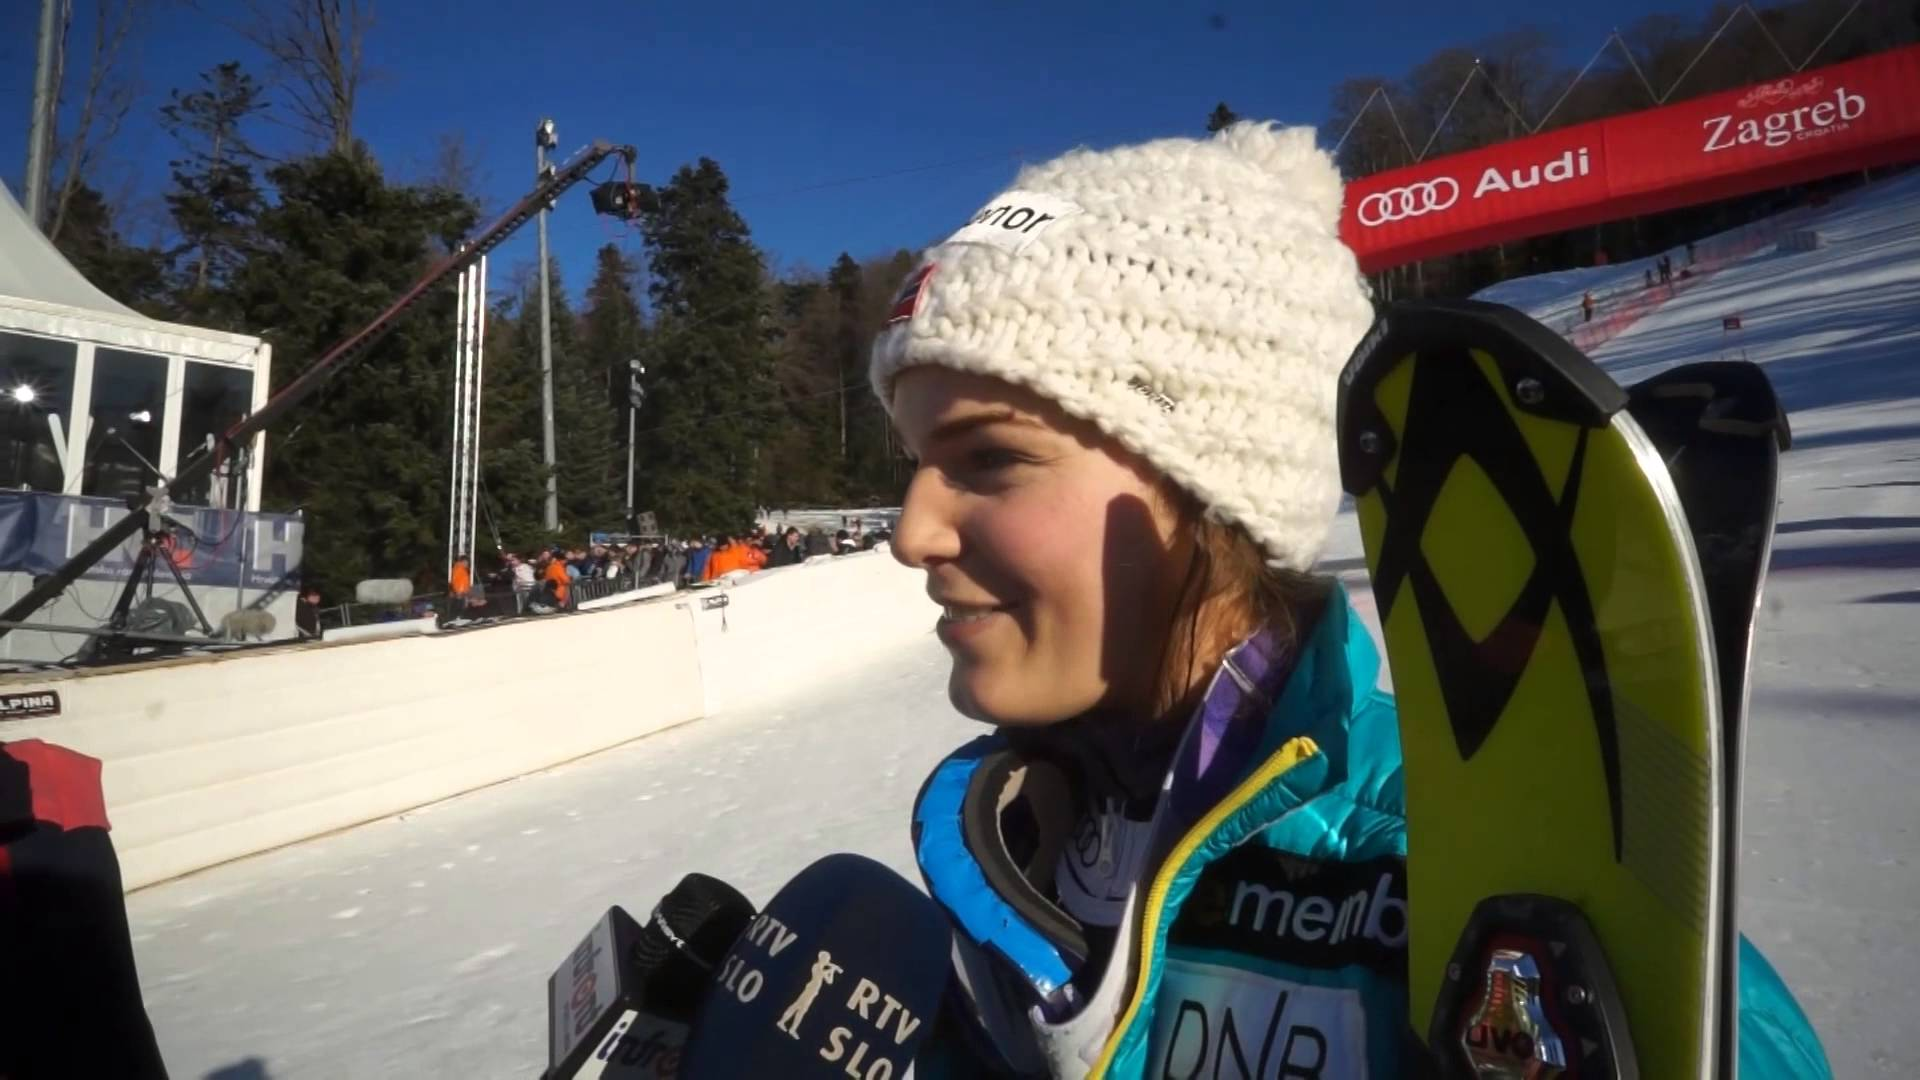 4.1.2015. - Vip Snow Queen Trophy Ladies' Slalom - Nina Loeseth won her first place at podium in a career, coming third after Mikaela Shiffrin and Kathrin Zettel.